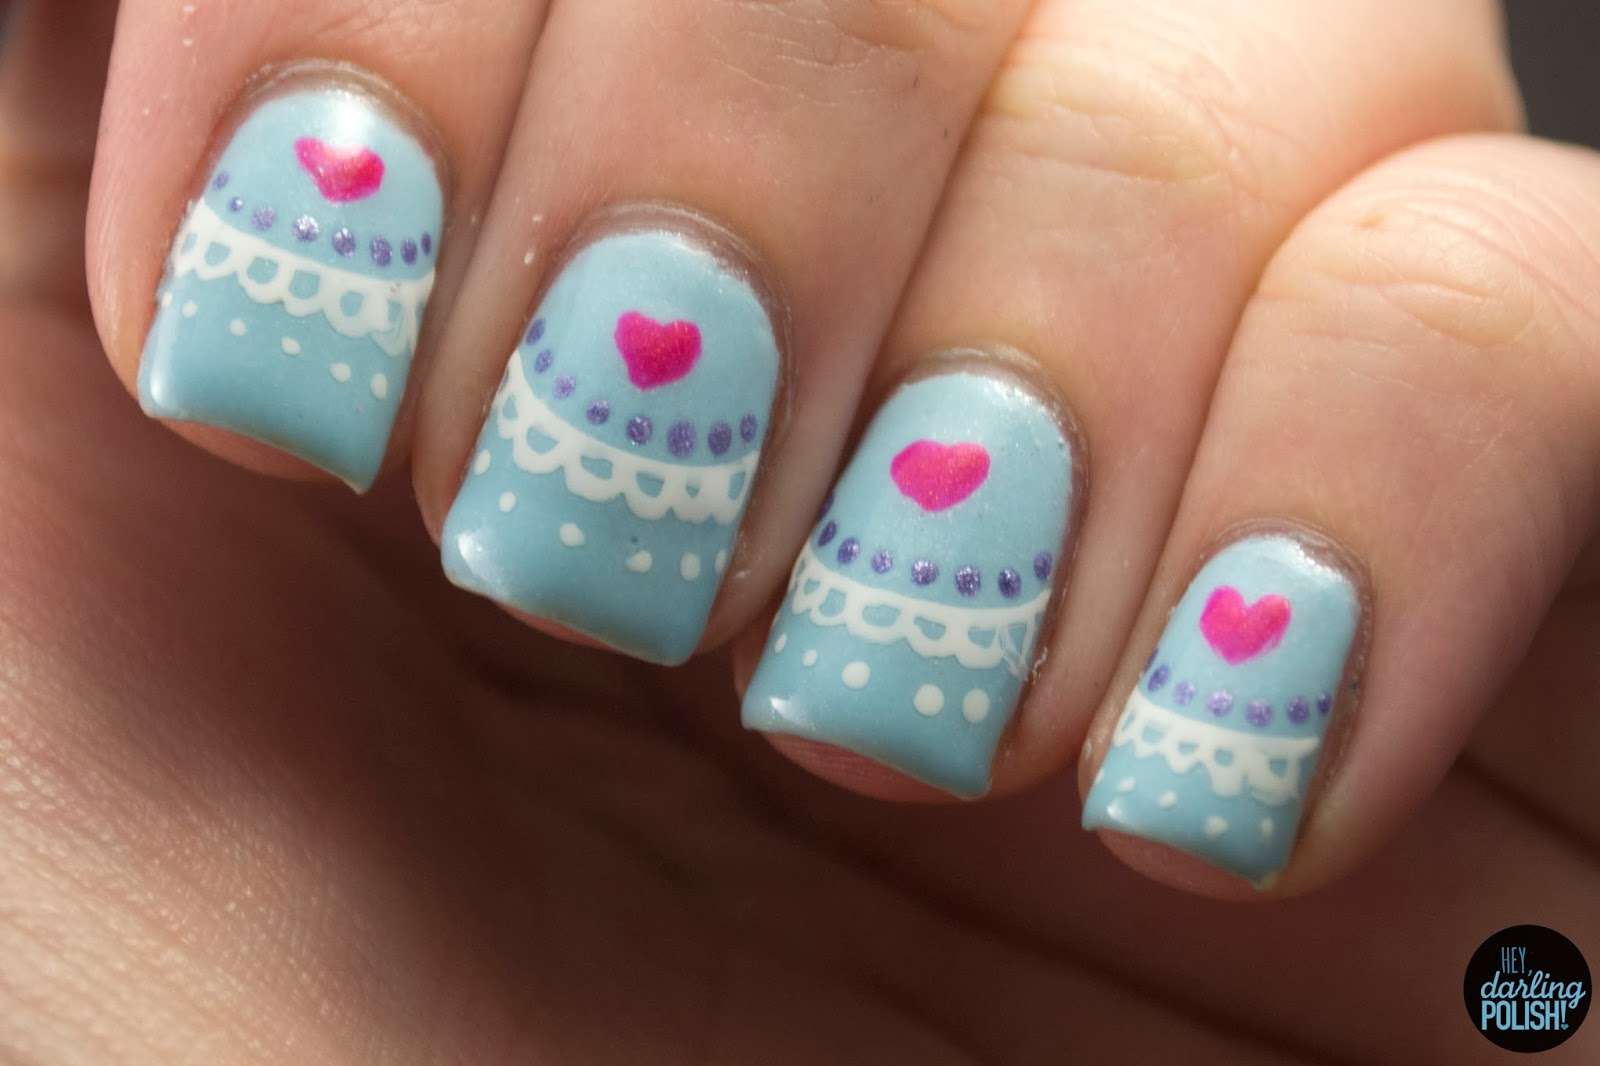 nails, nail art, nail polish, polish, valentines, golden oldie thursdays, hearts, blue, hey darling polish